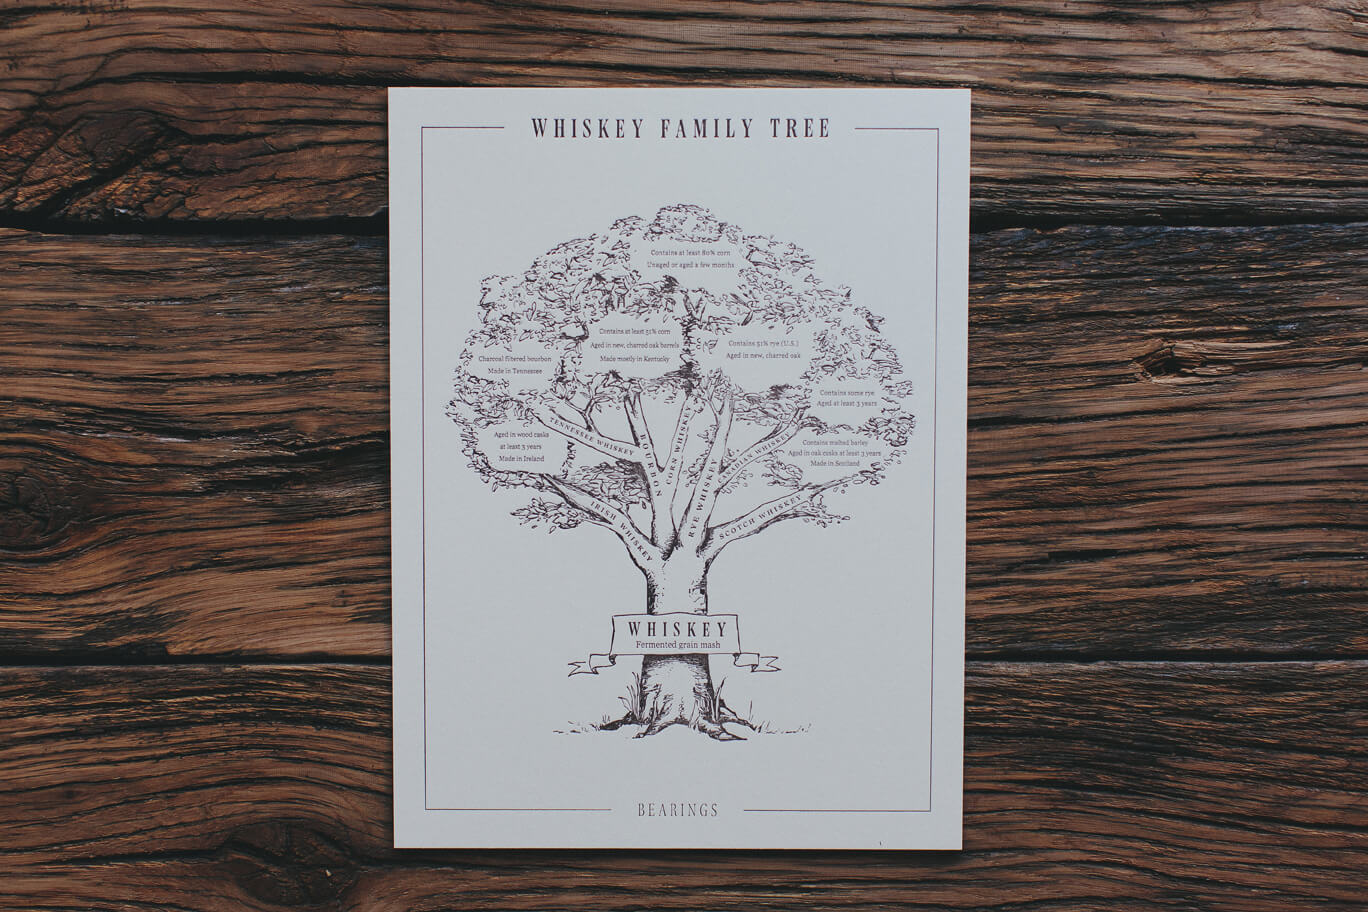 Bearings Guide whiskey family tree letterpress print illustration shows the types and varieties and heritage of whiskey and bourbon from Irish to Tennessee to Scotch, Rye and Canadian.